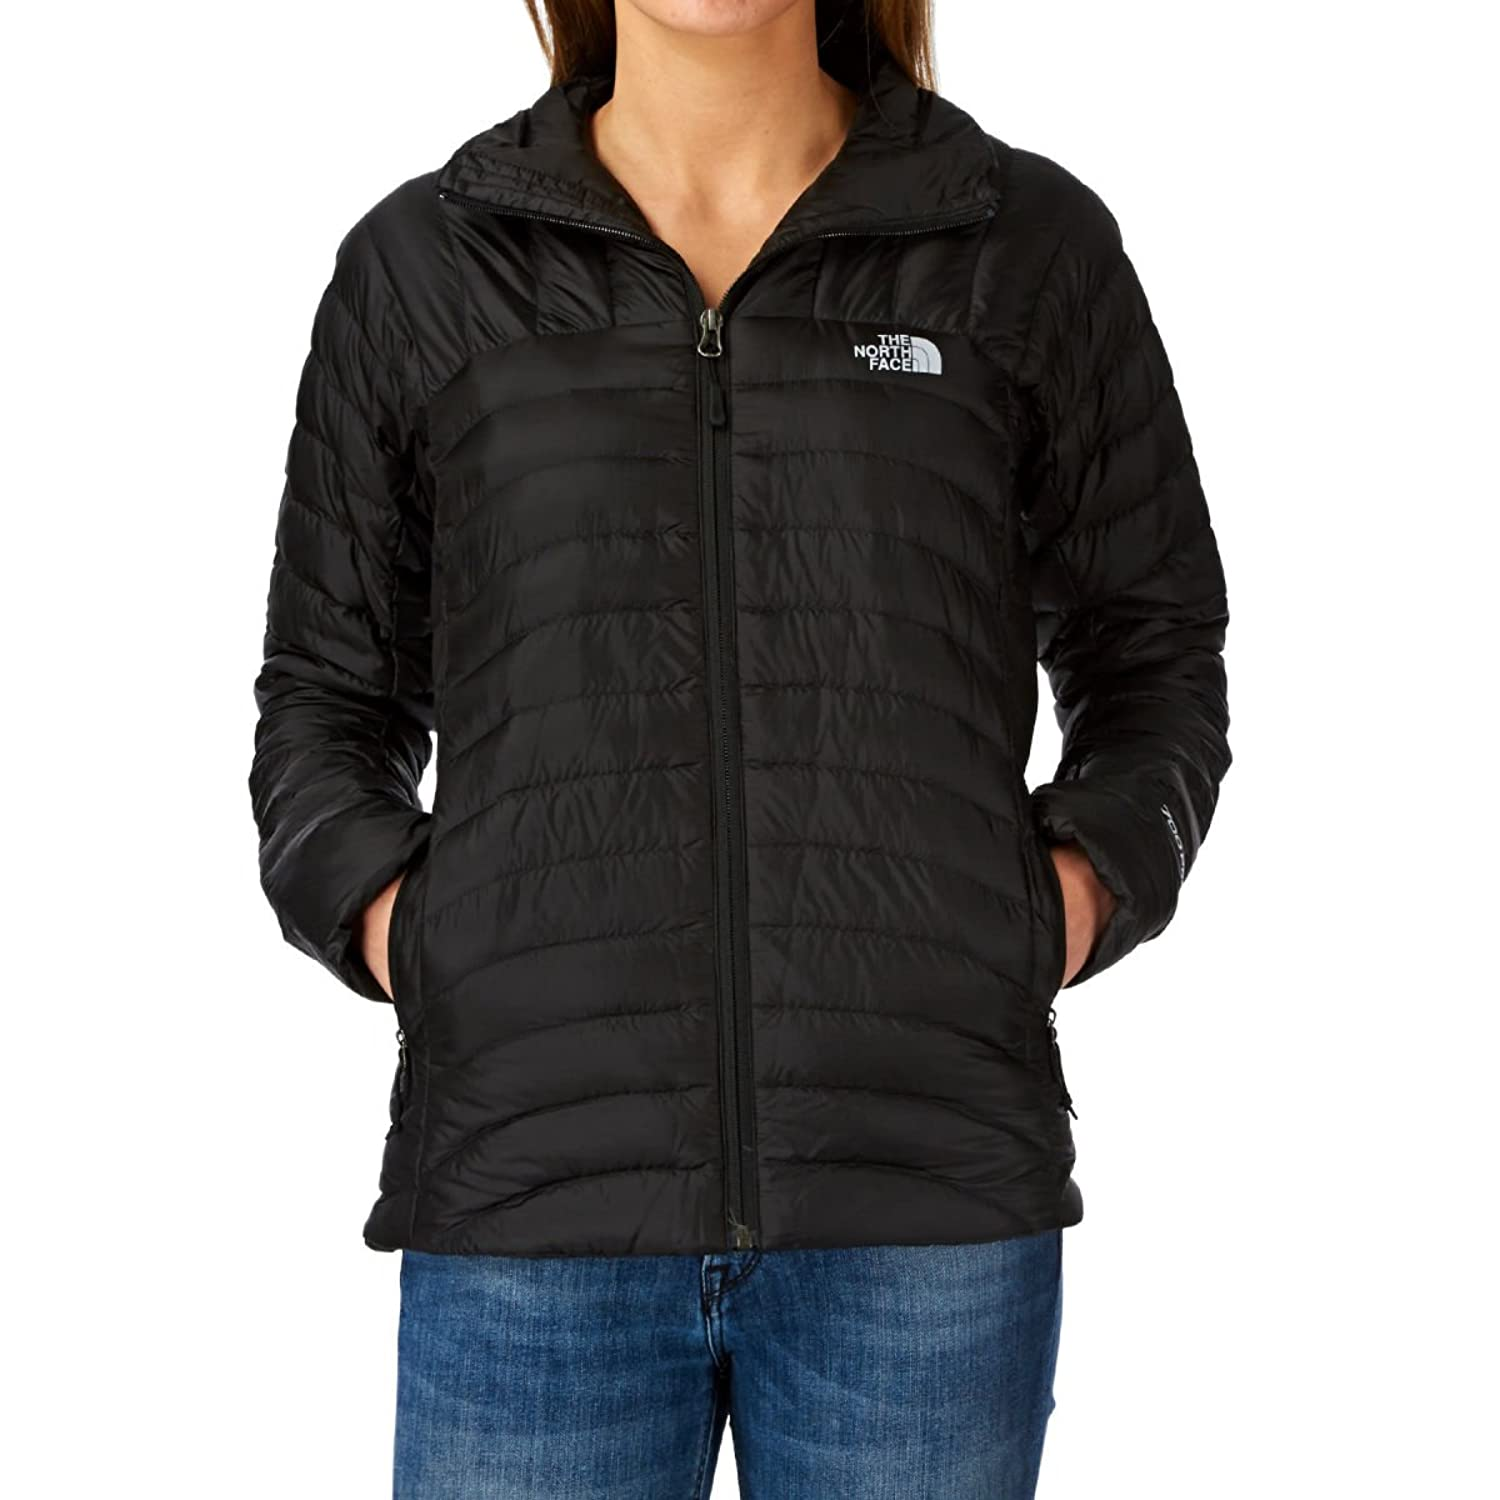 The North Face Tonnerro Pro Jacket - Tnf Black